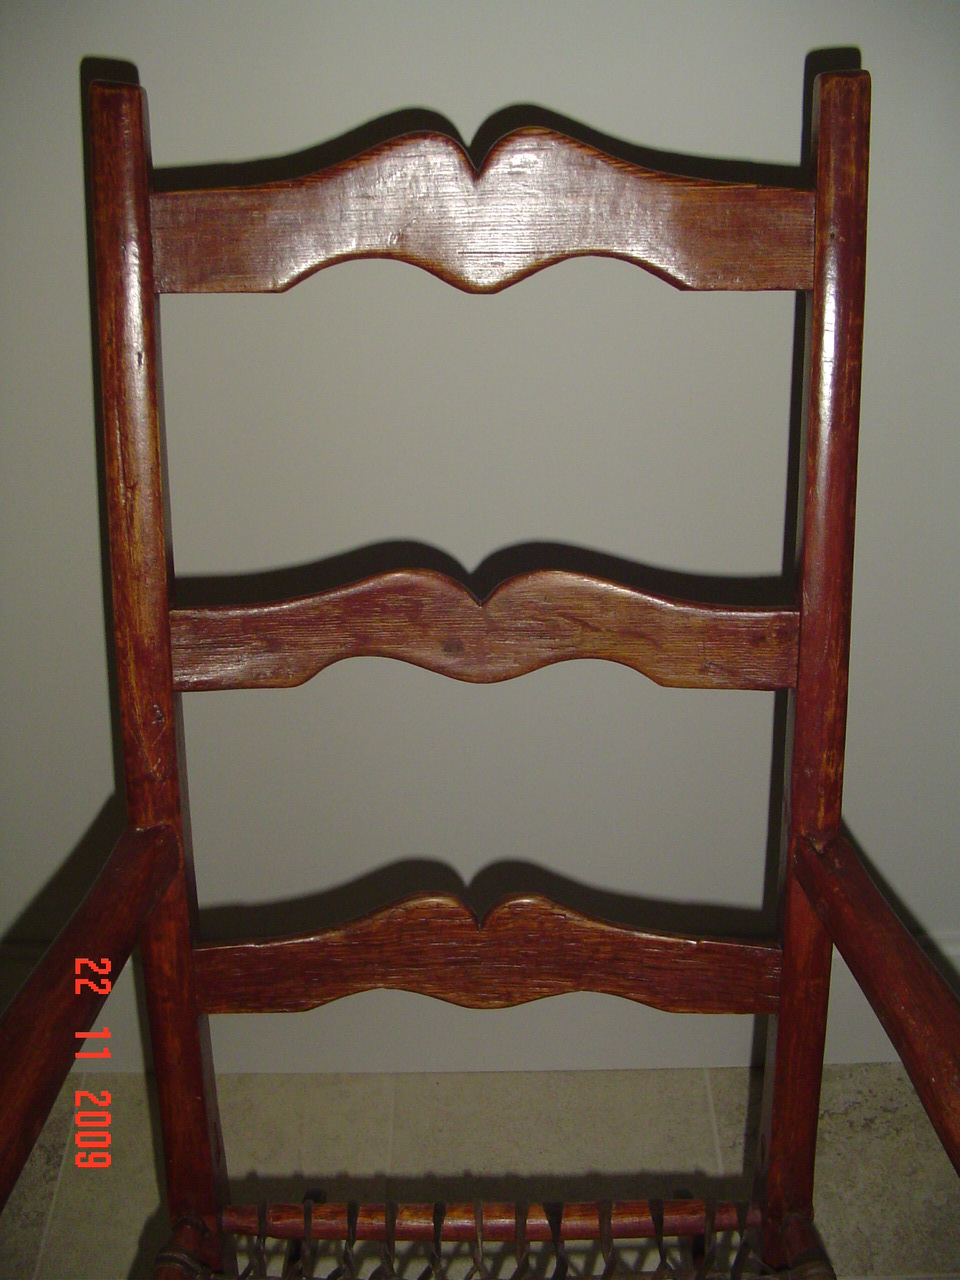 PRIMITIVE ROCKING CHAIR Canadian pine wood furniture